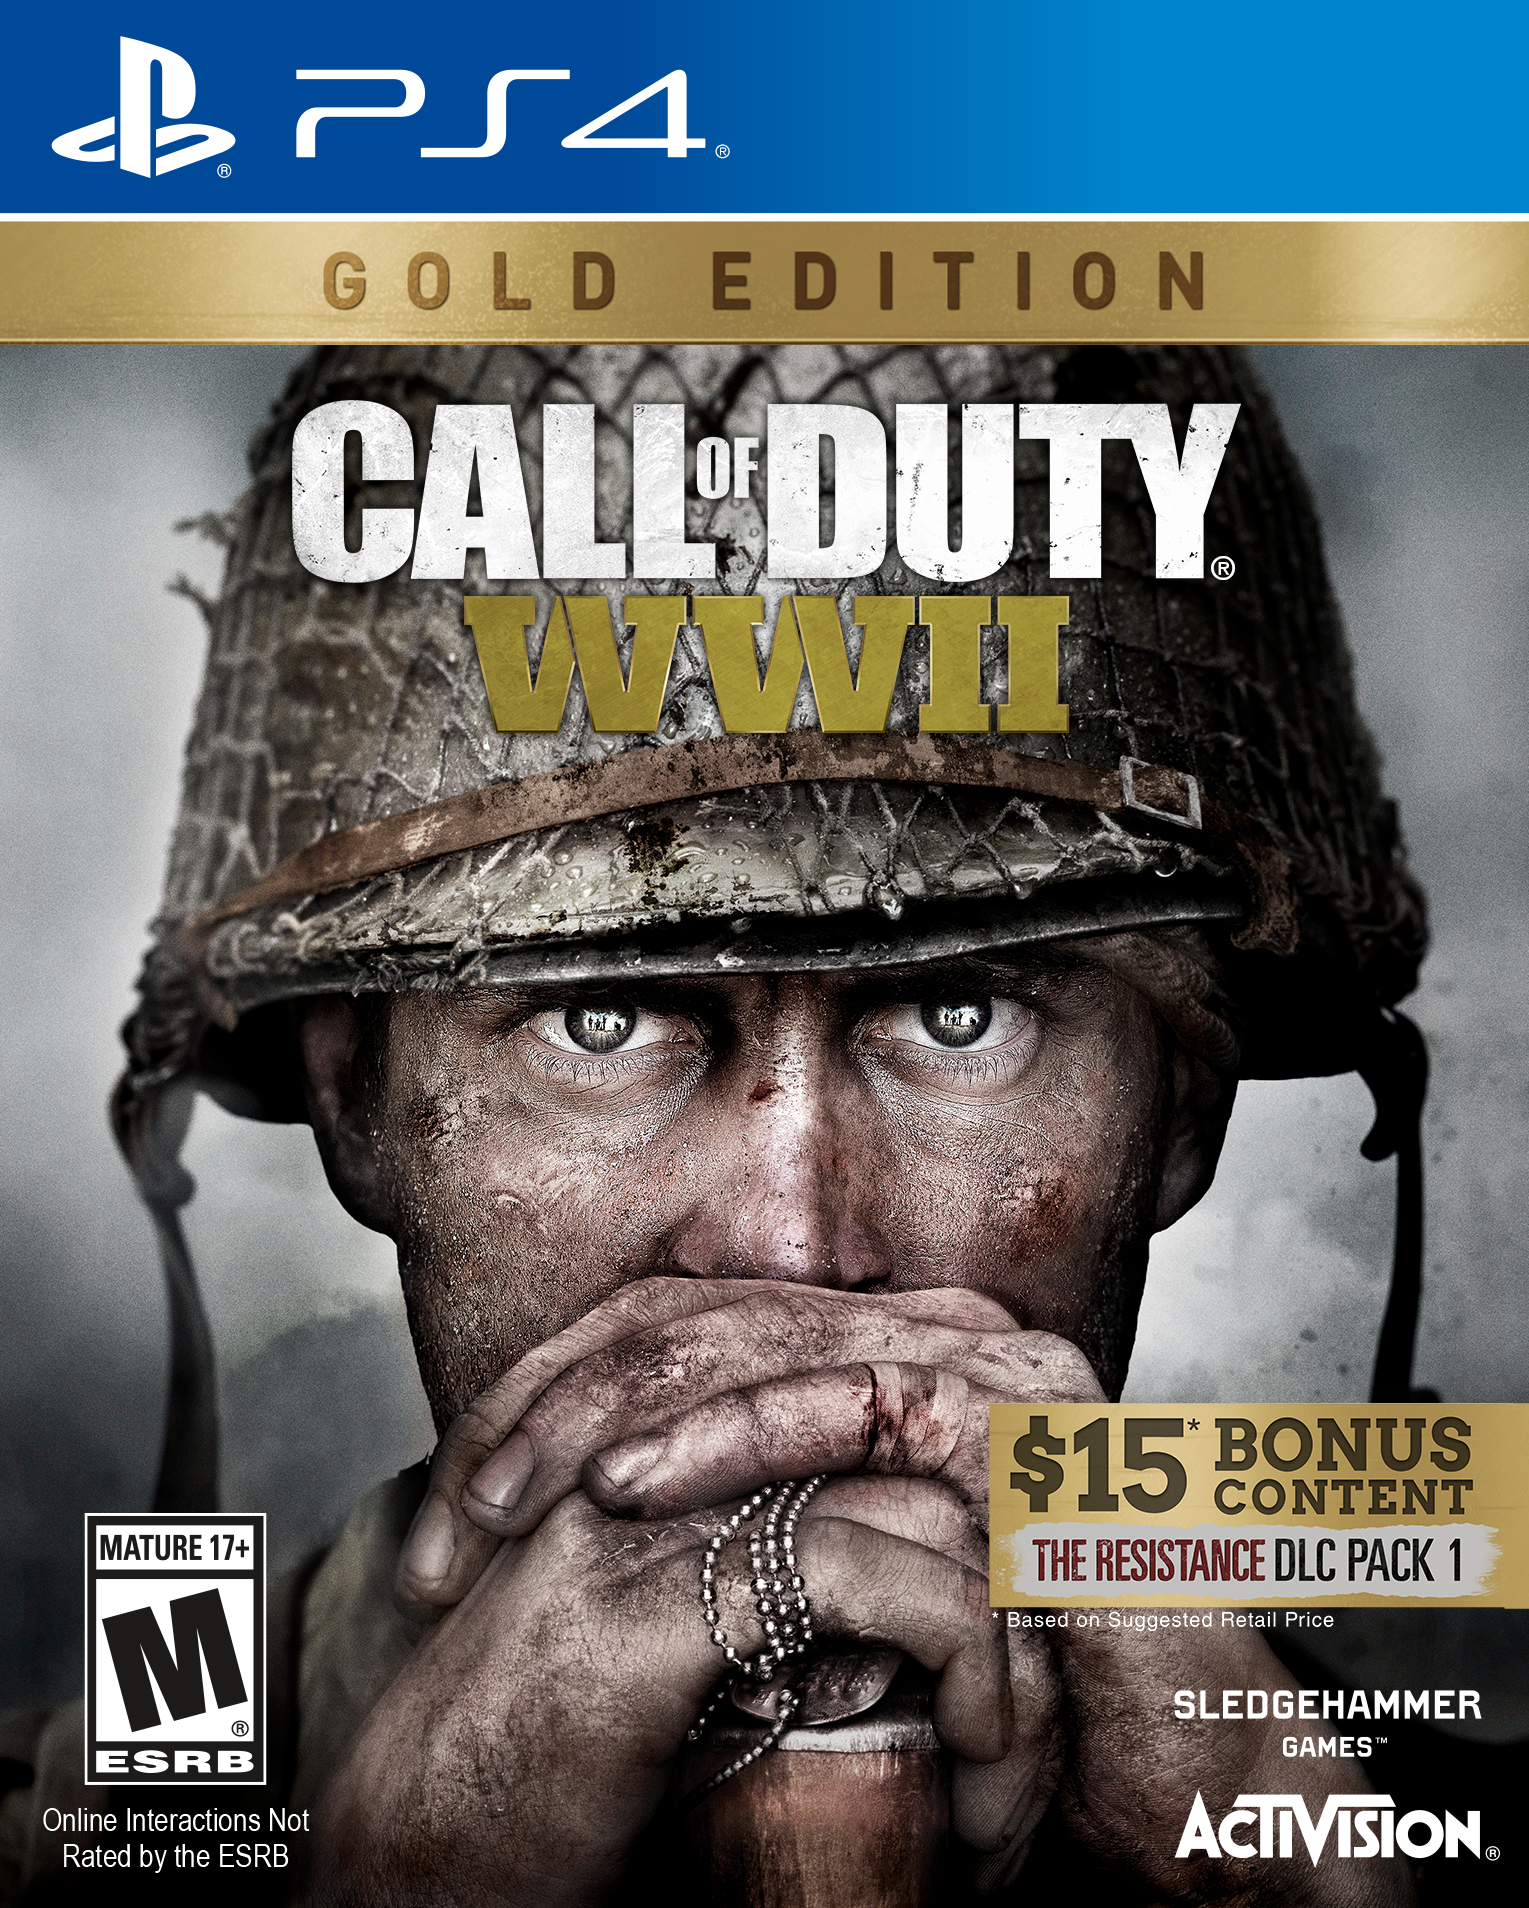 Call of Duty: WWII Gold Edition, Activision, PlayStation 4, 047875882478